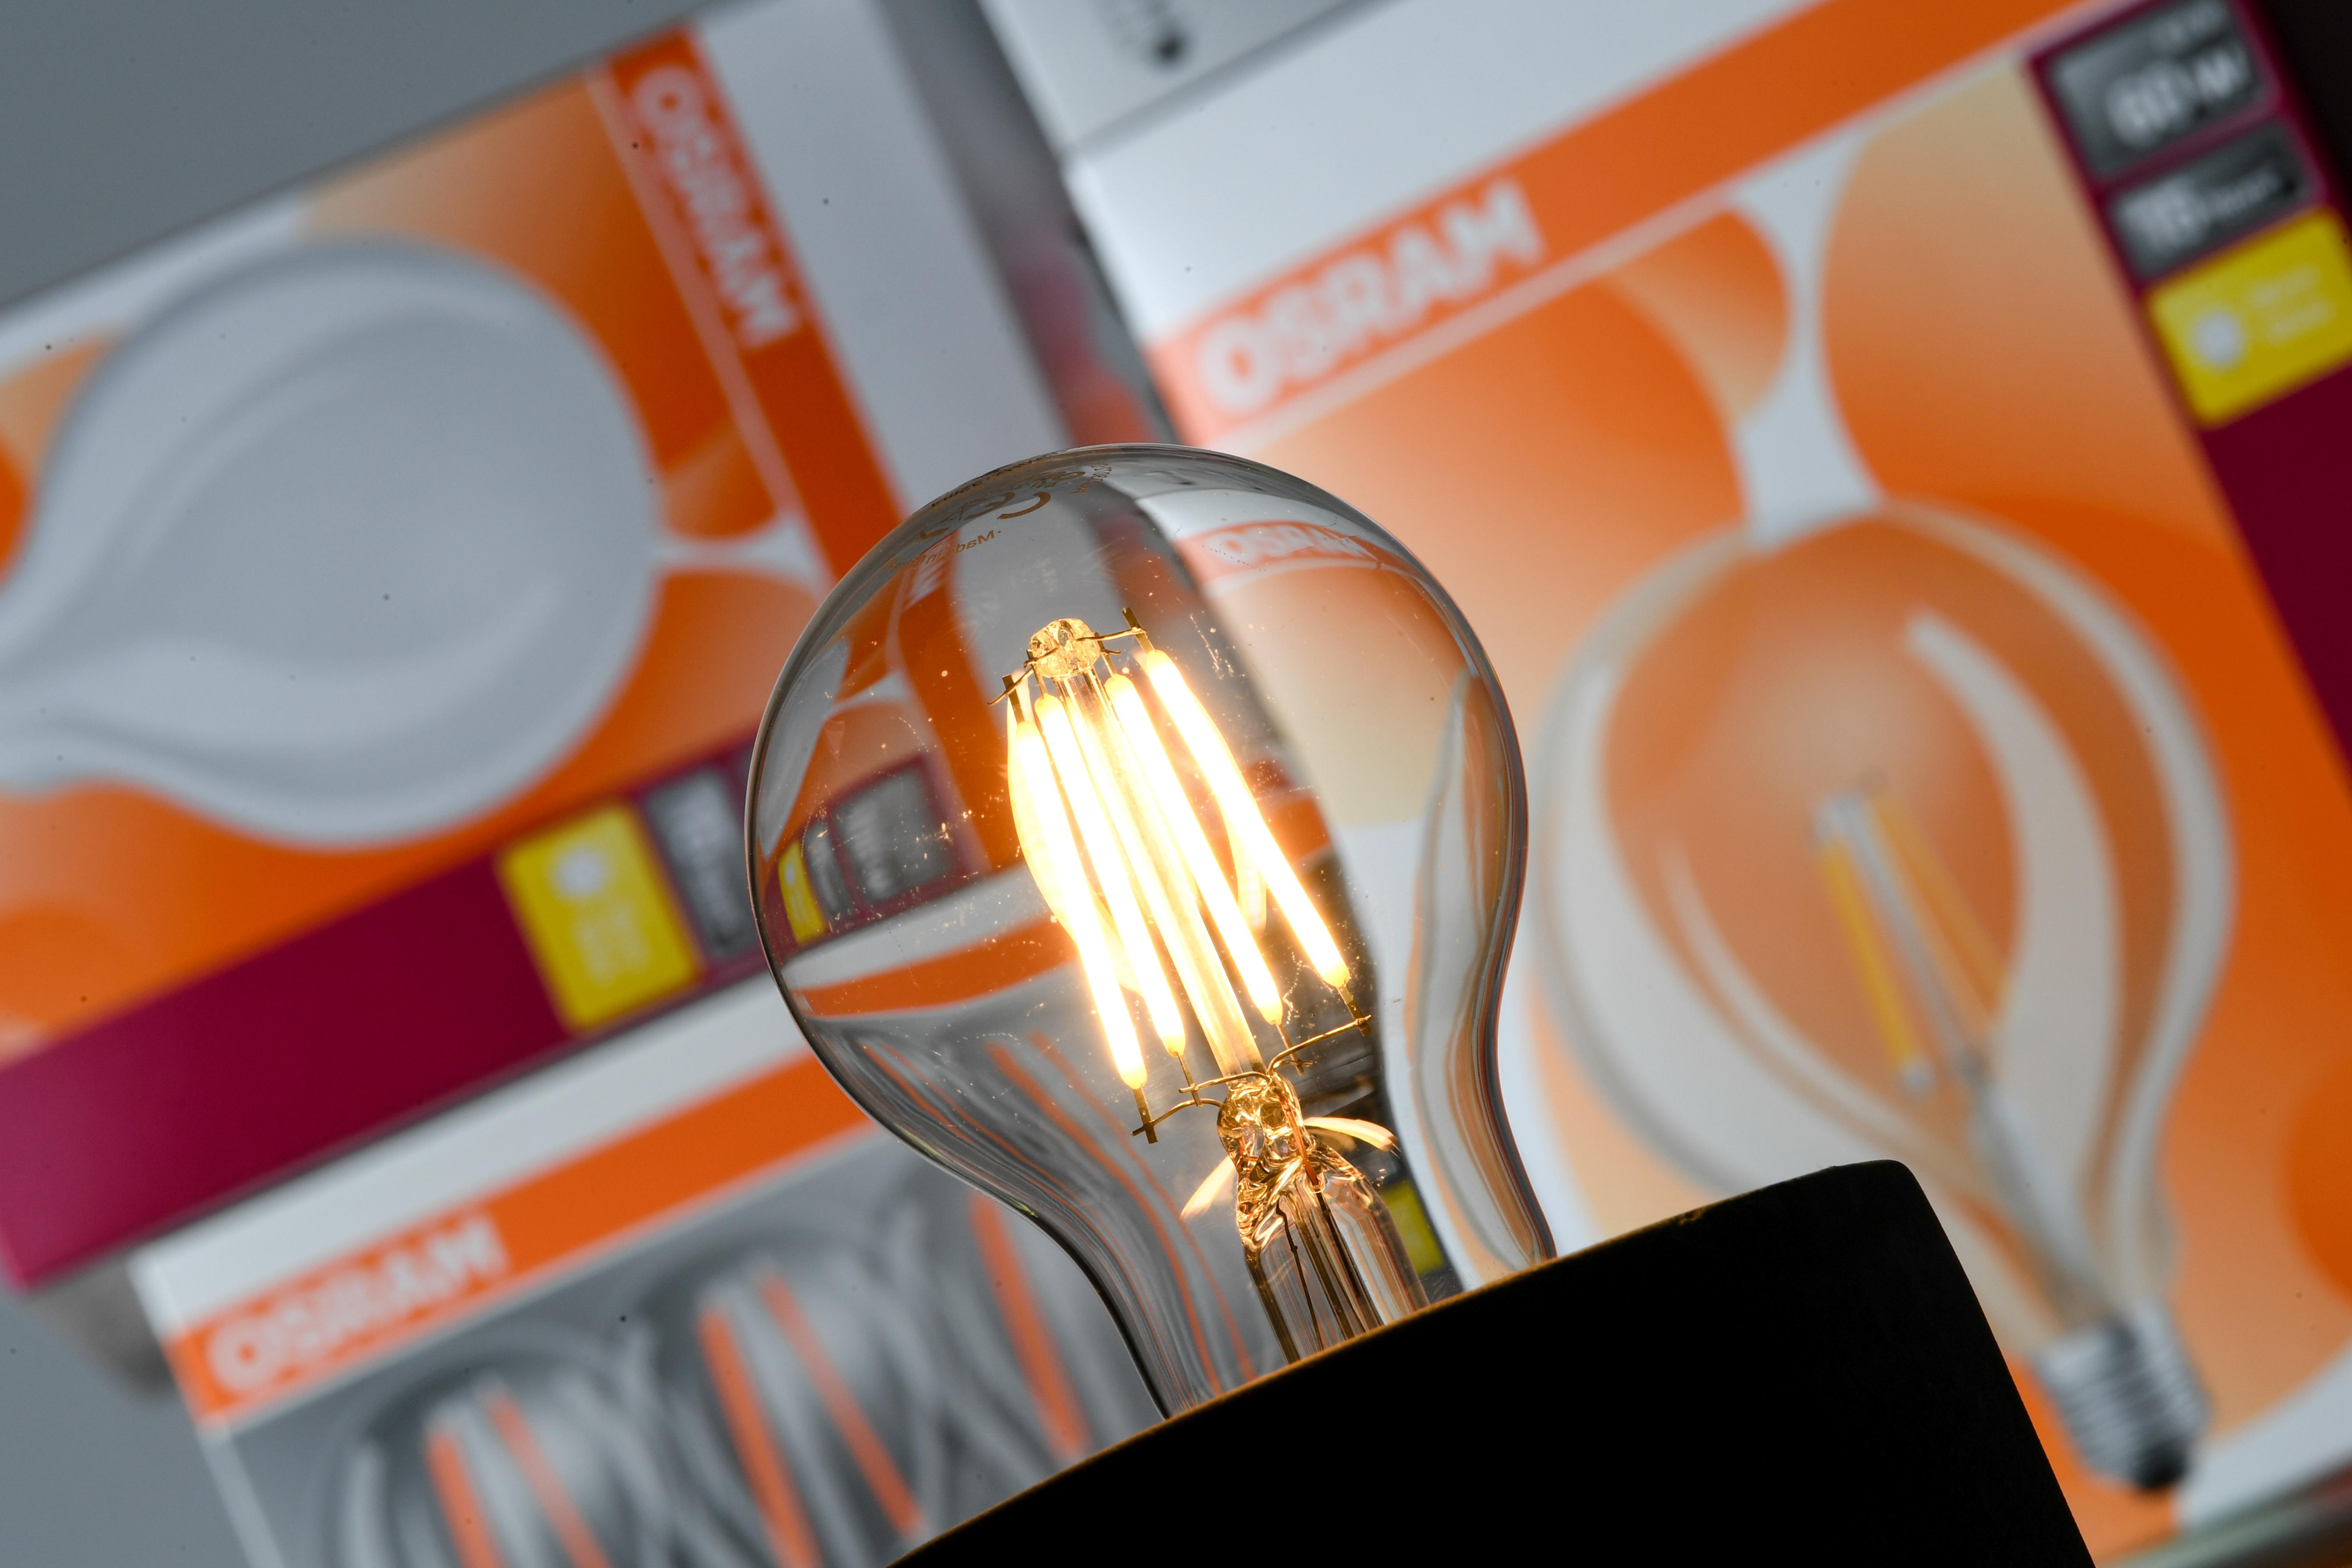 Austria's AMS lights up Osram bidding war with new $4.9 billion offer